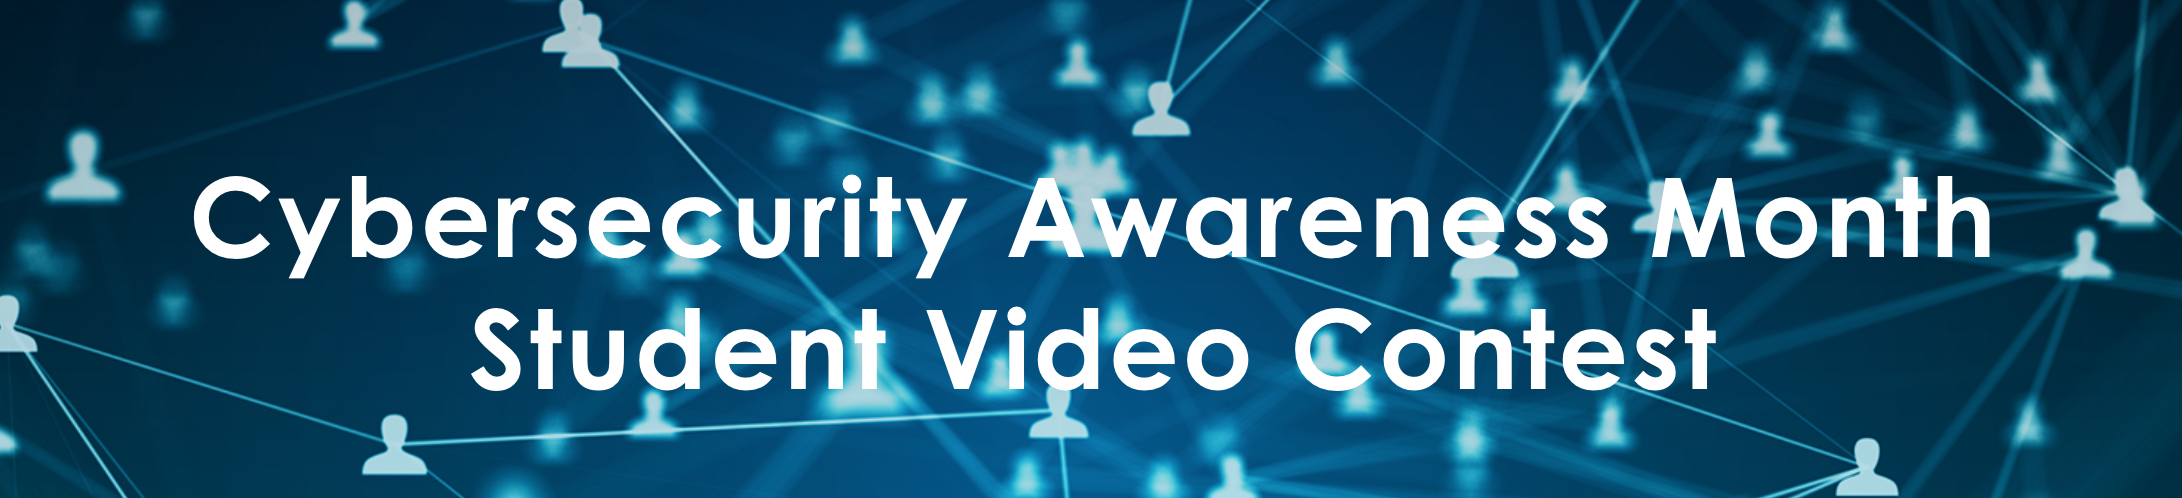 Cybersecurity Awareness Month Student Video Contest